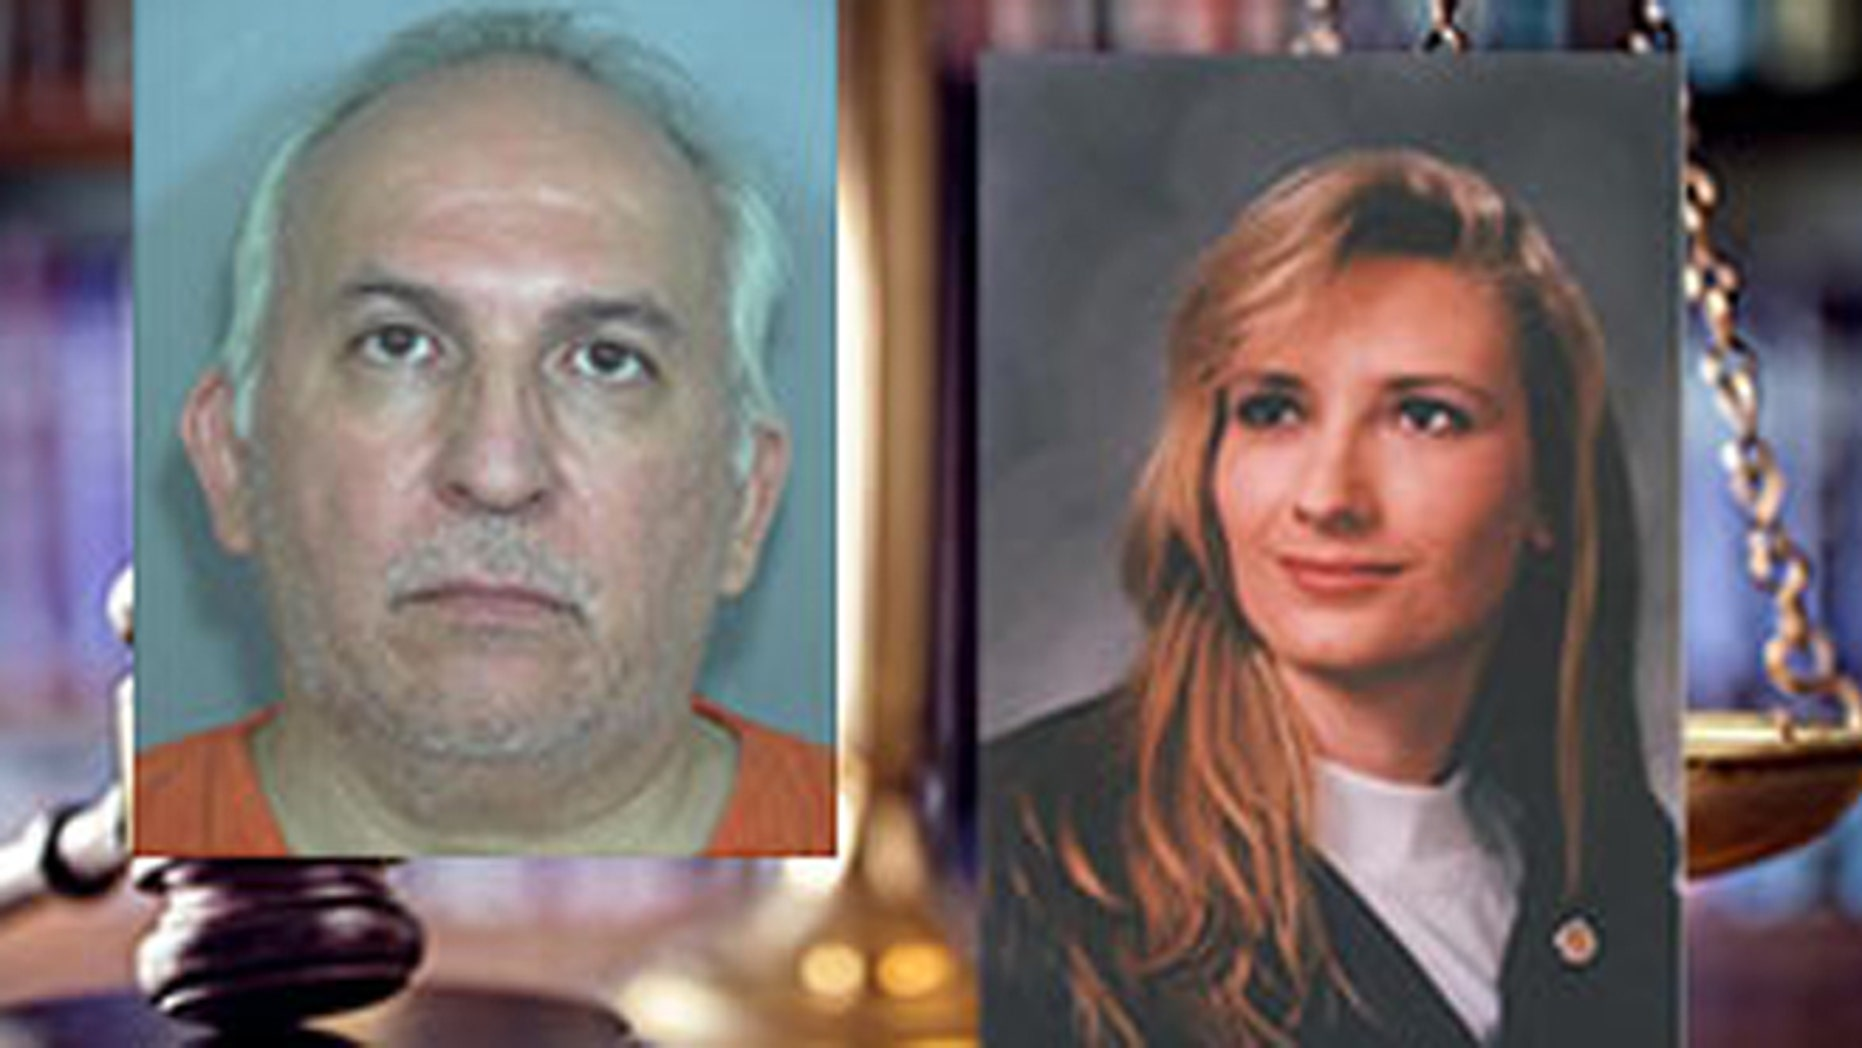 Nearly 22 years after Tina Sandoval's disappearance, John Sandoval, Tina's estranged husband, led authorites to her remains.